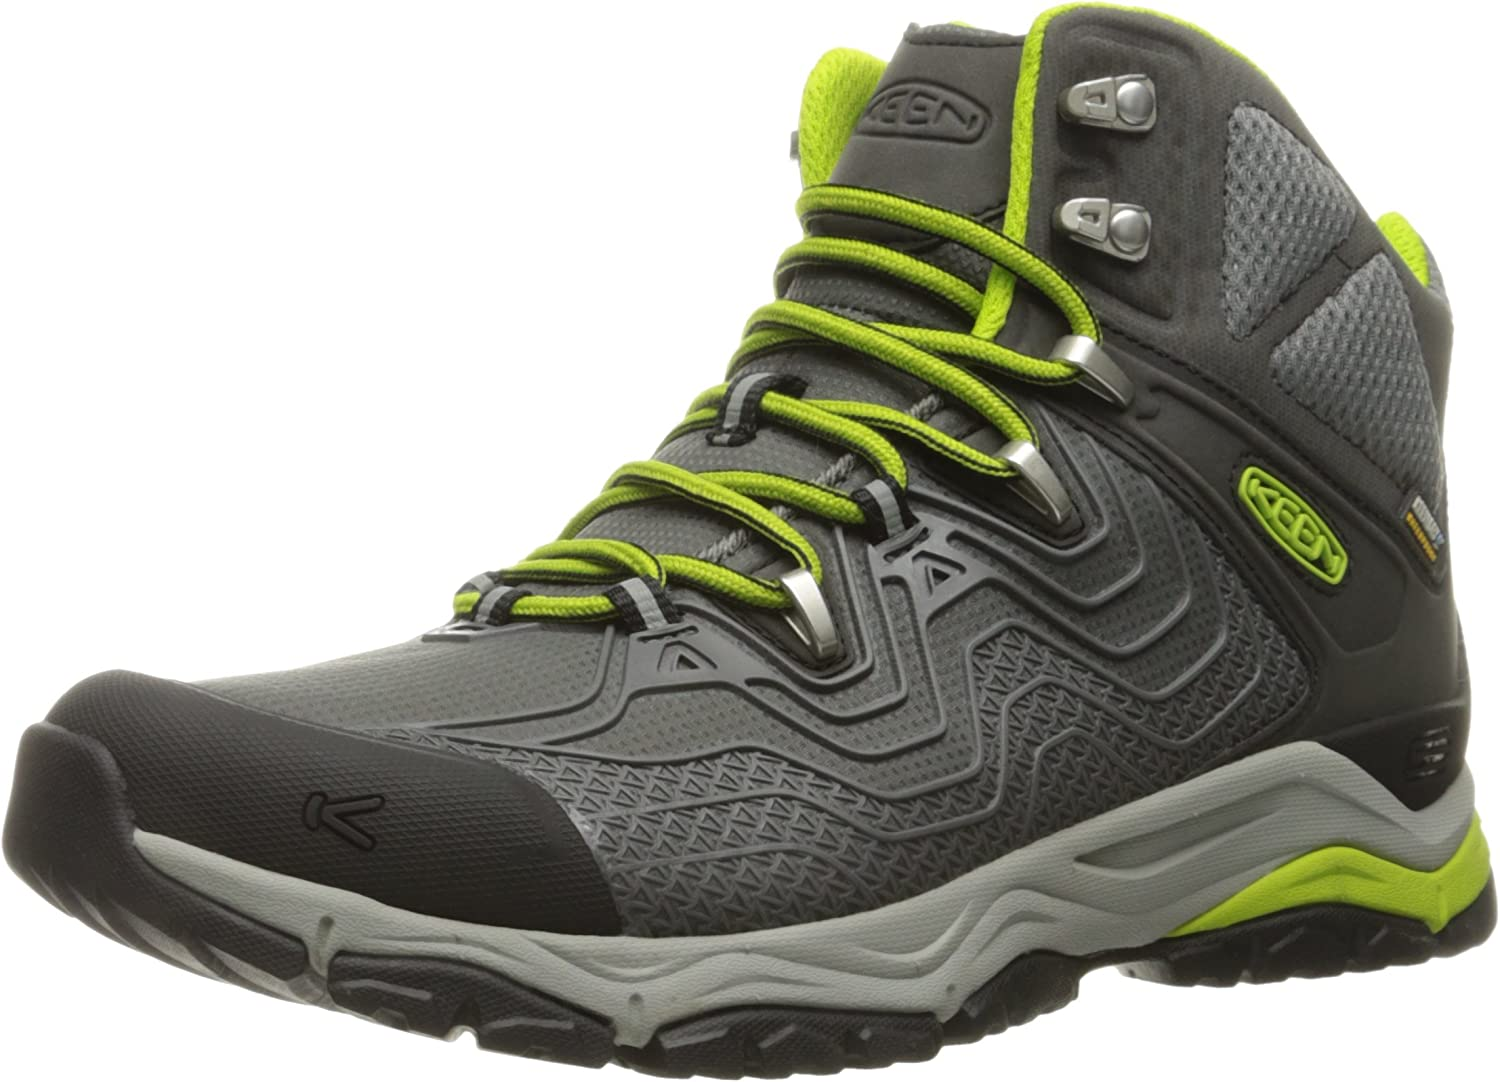 KEEN Men's Aphlex Mid Waterproof shoes